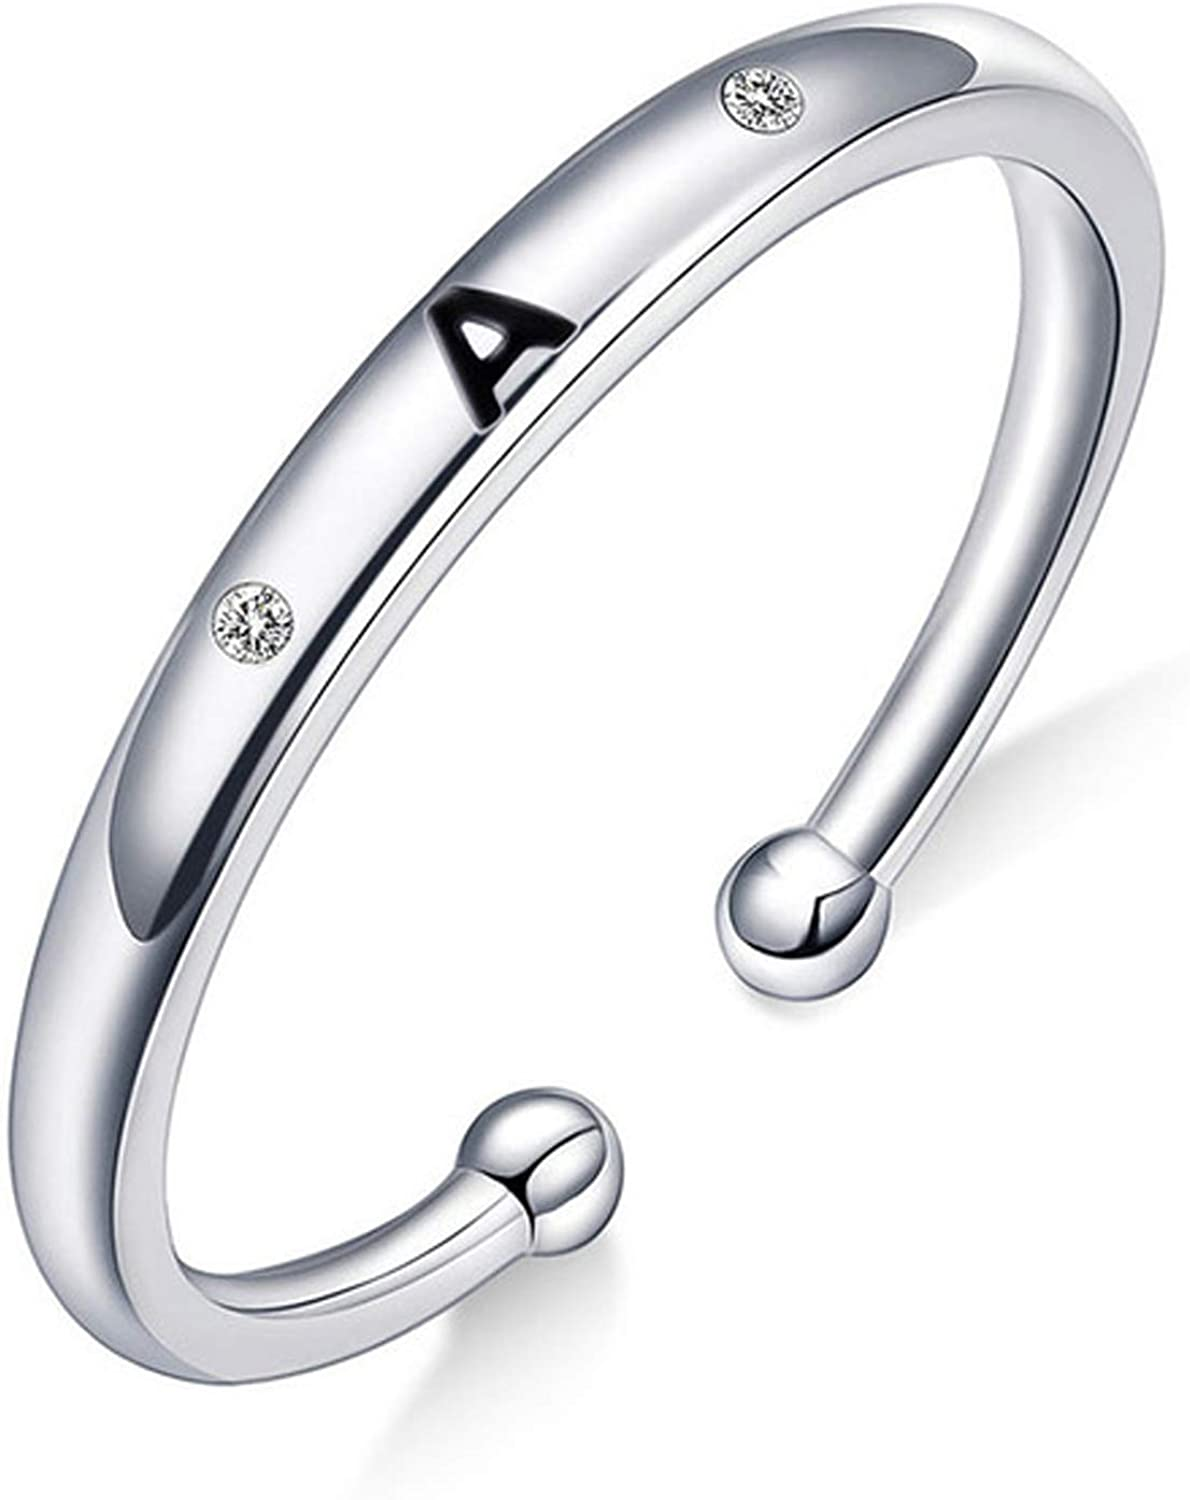 YOUFENG Initial Ring Stackable Rings for Women Personalized Letter Adjustable Open Ring Simulated Diamond Eternity Bands for Women